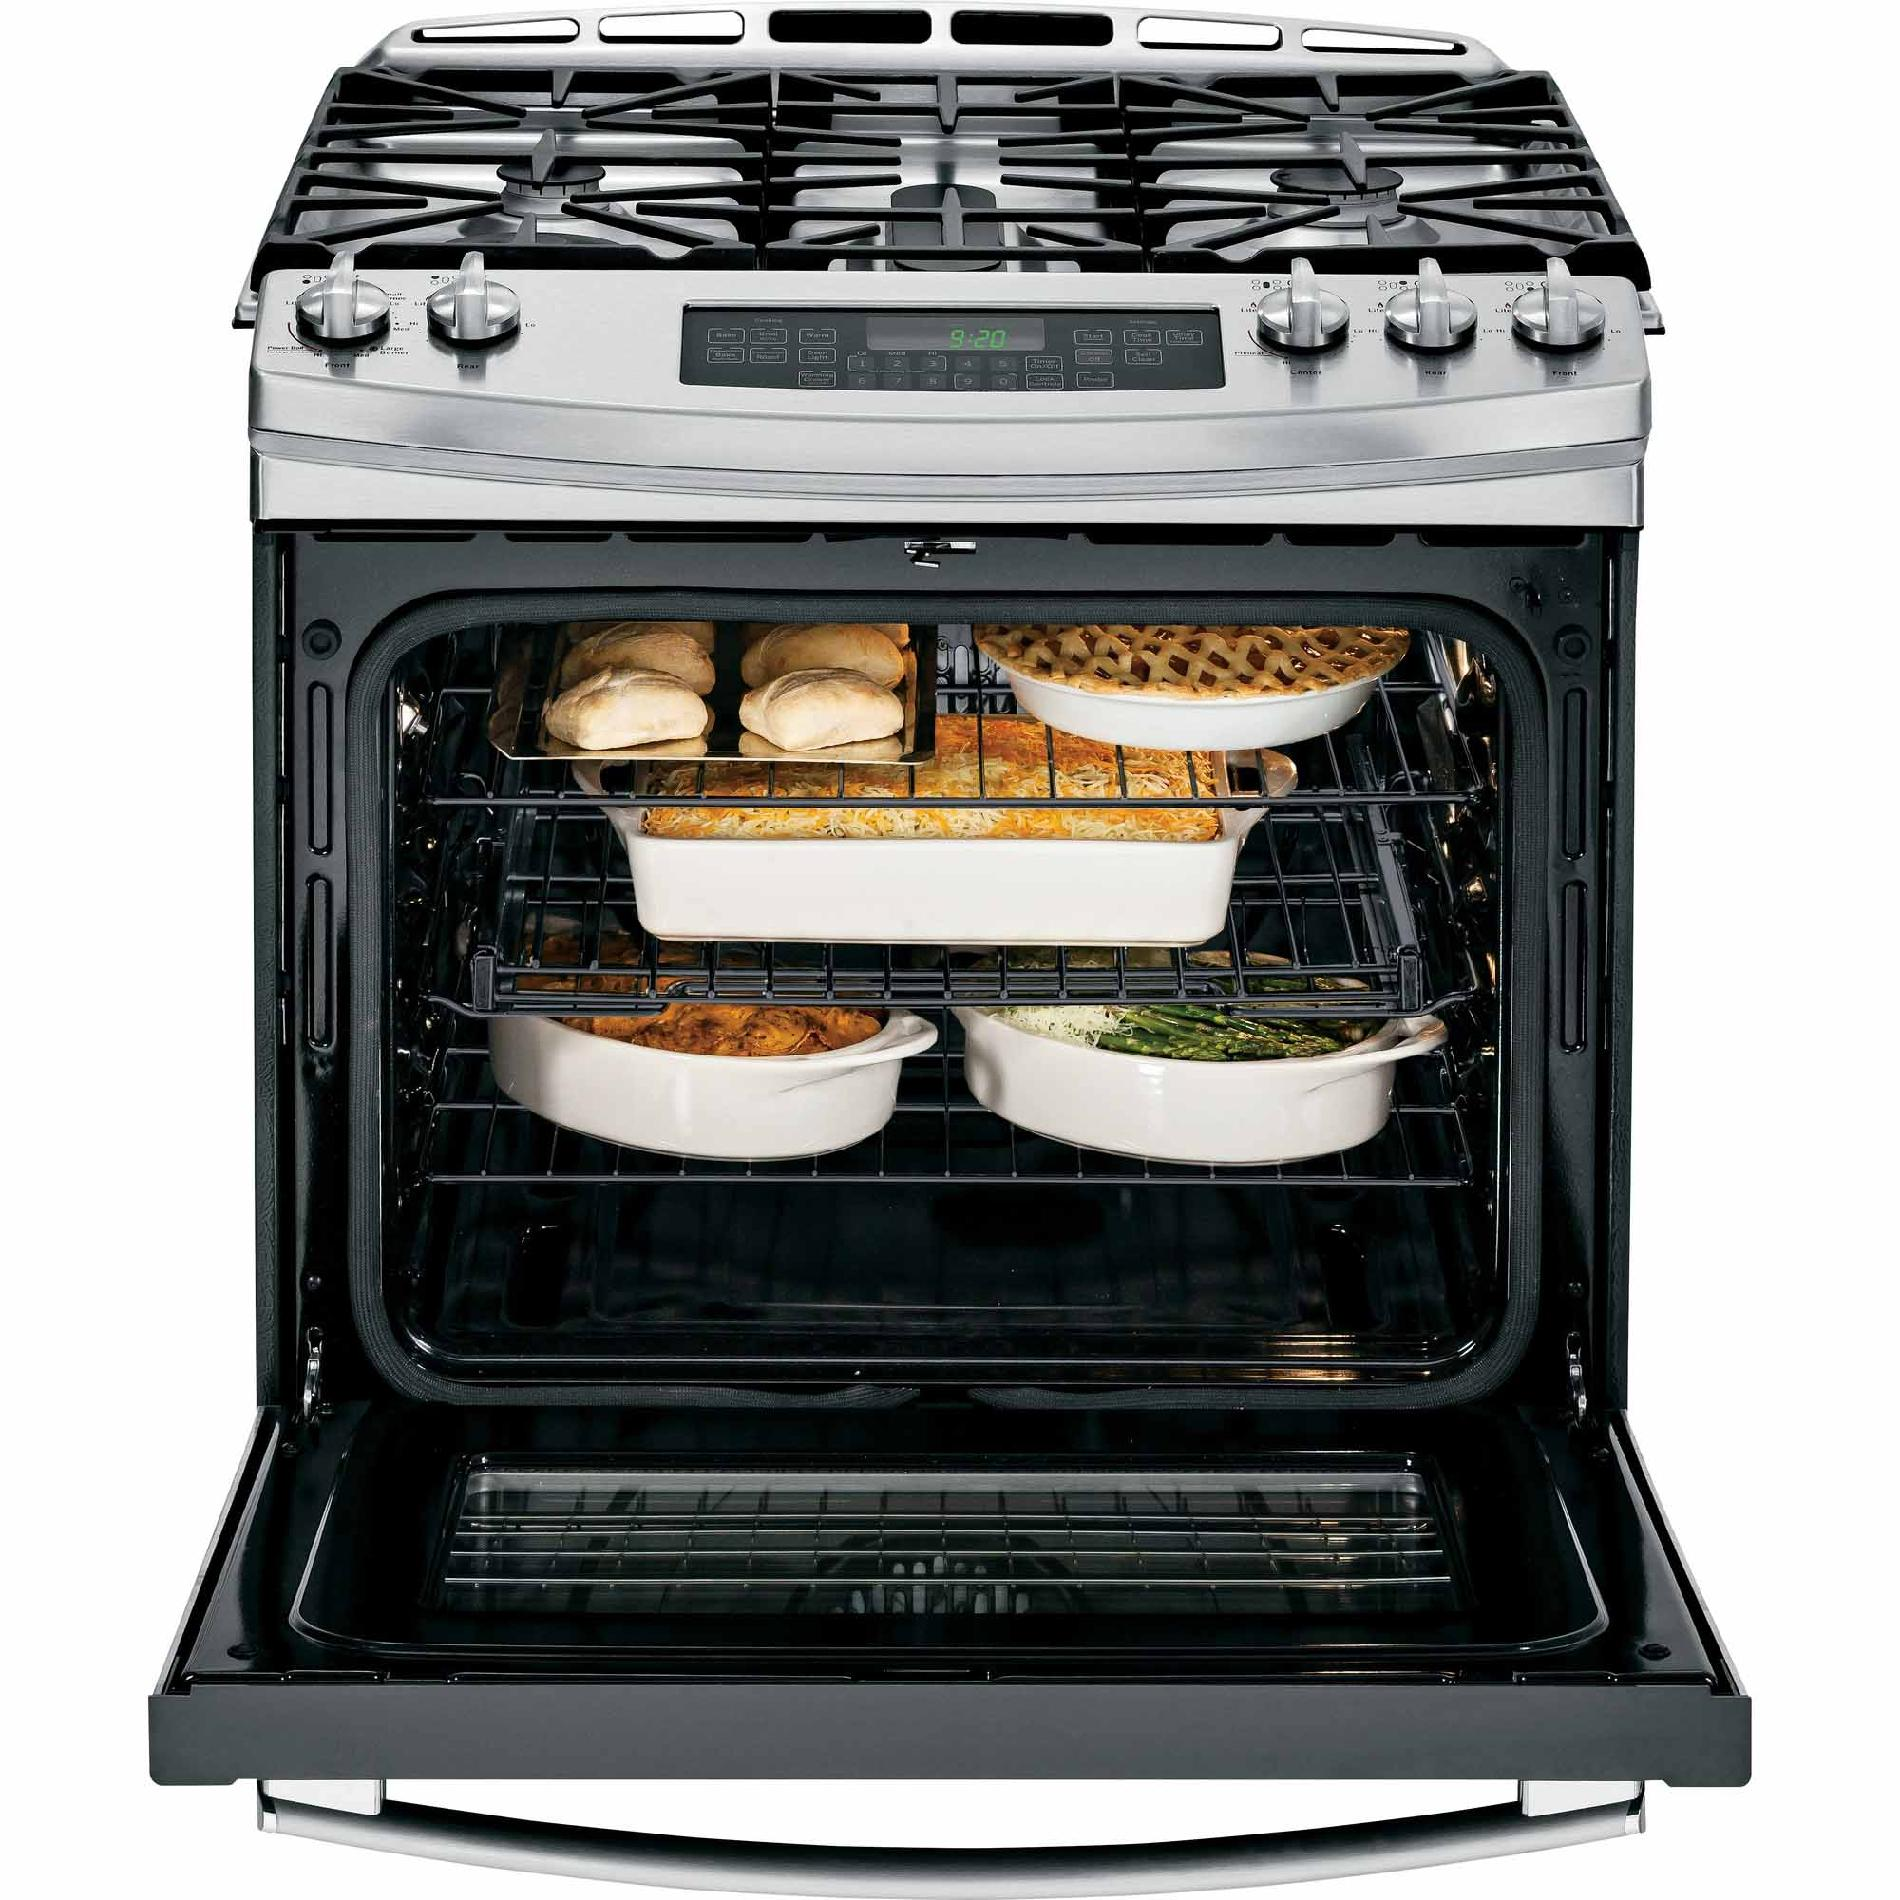 GE Profile PGS920SEFSS 5.6 cu. ft. Slide-In Gas Range w/ Convection - Stainless Steel